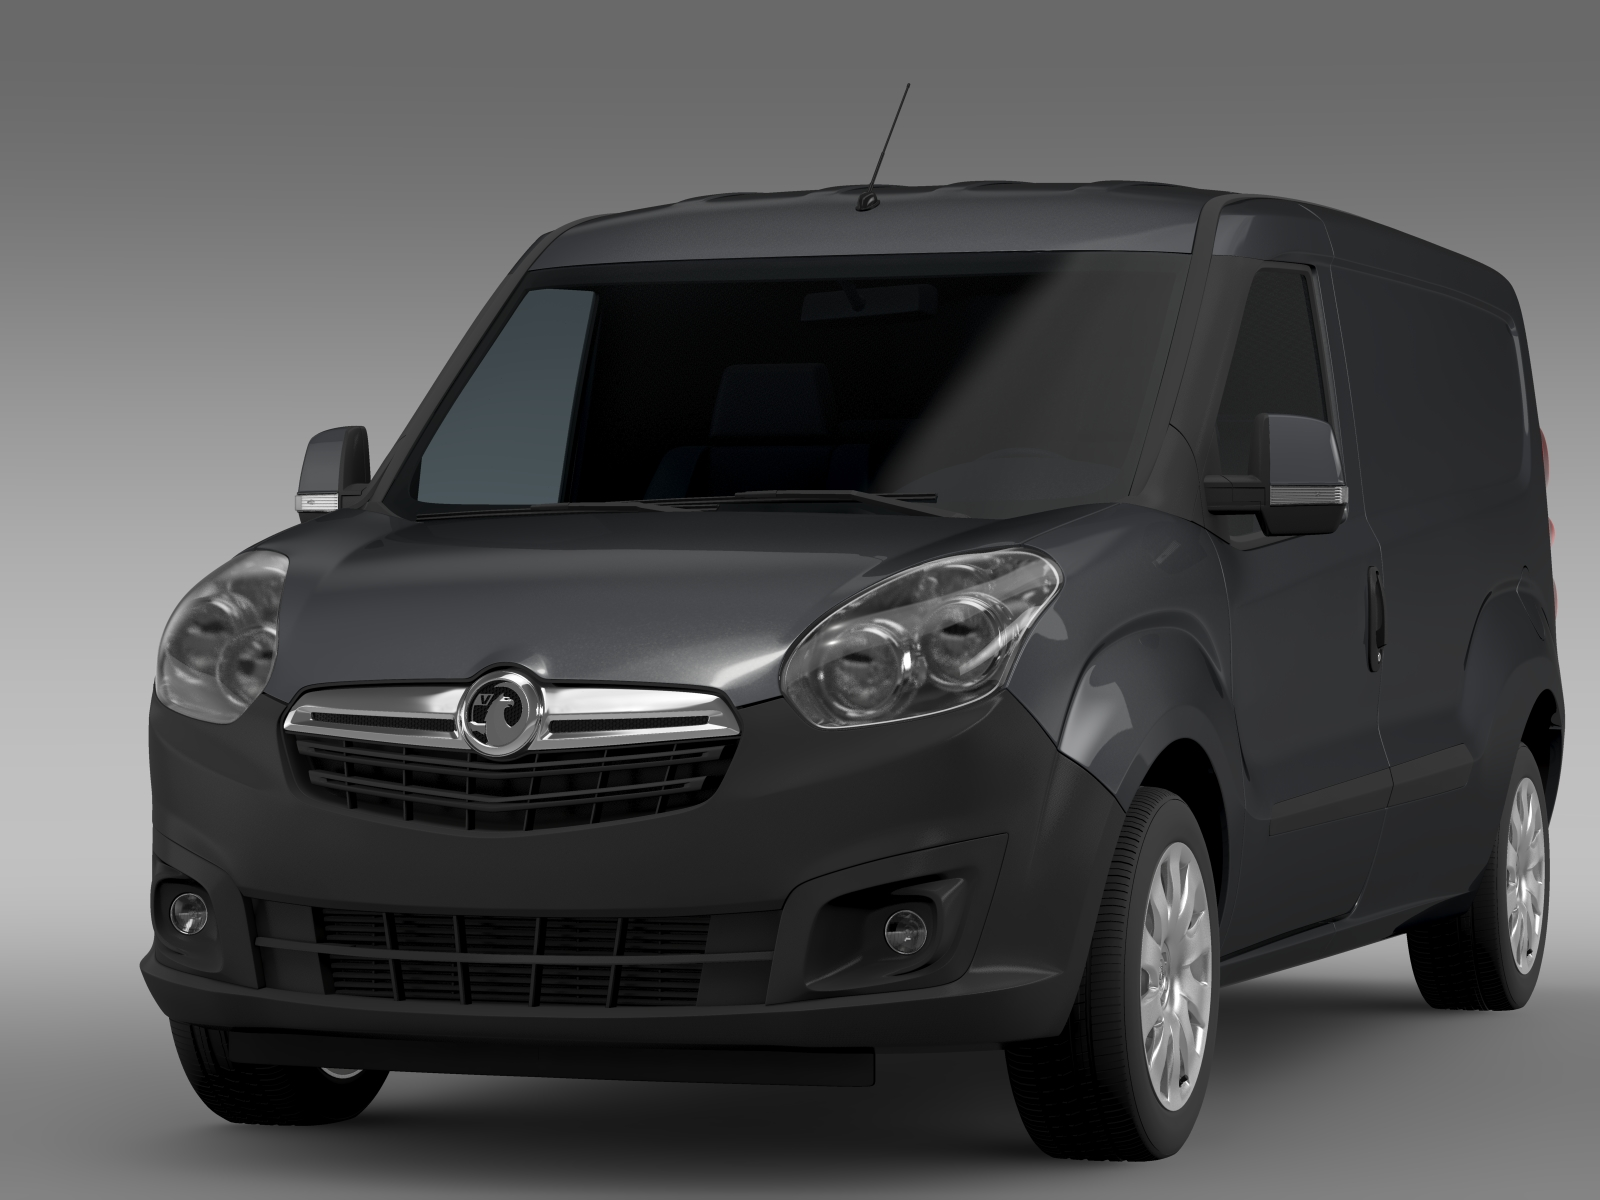 vauxhall combo h1l2 cargo 2015 3d model buy vauxhall combo h1l2 cargo 2015 3d model flatpyramid. Black Bedroom Furniture Sets. Home Design Ideas